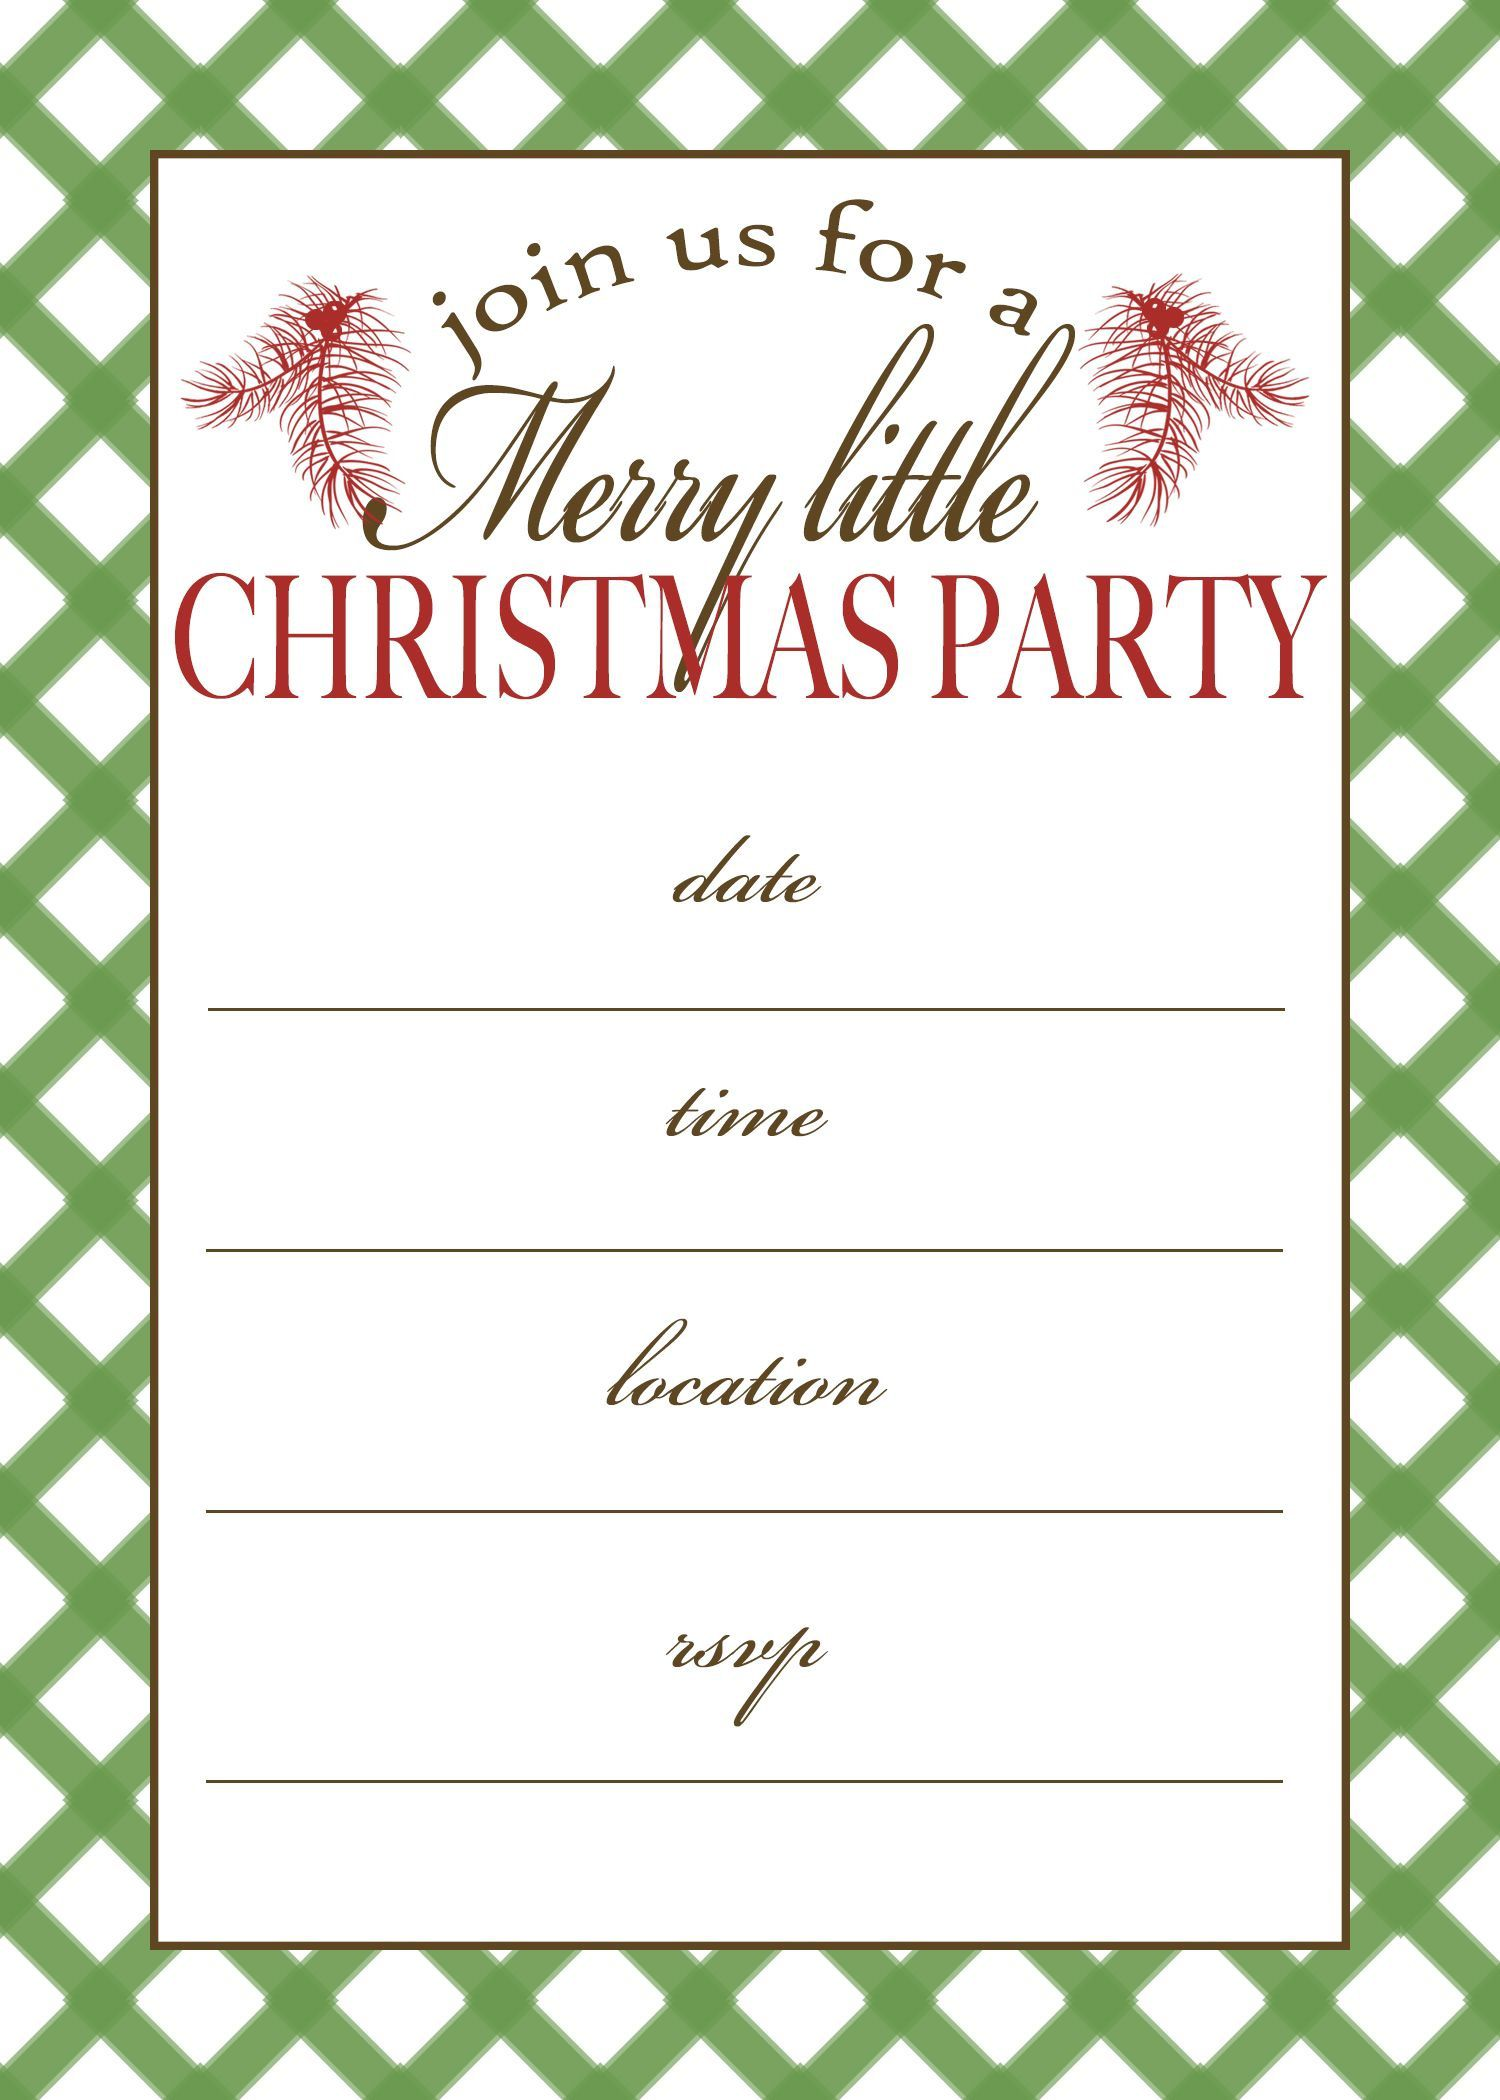 001 Stunning Free Online Holiday Invitation Template Concept  TemplatesFull